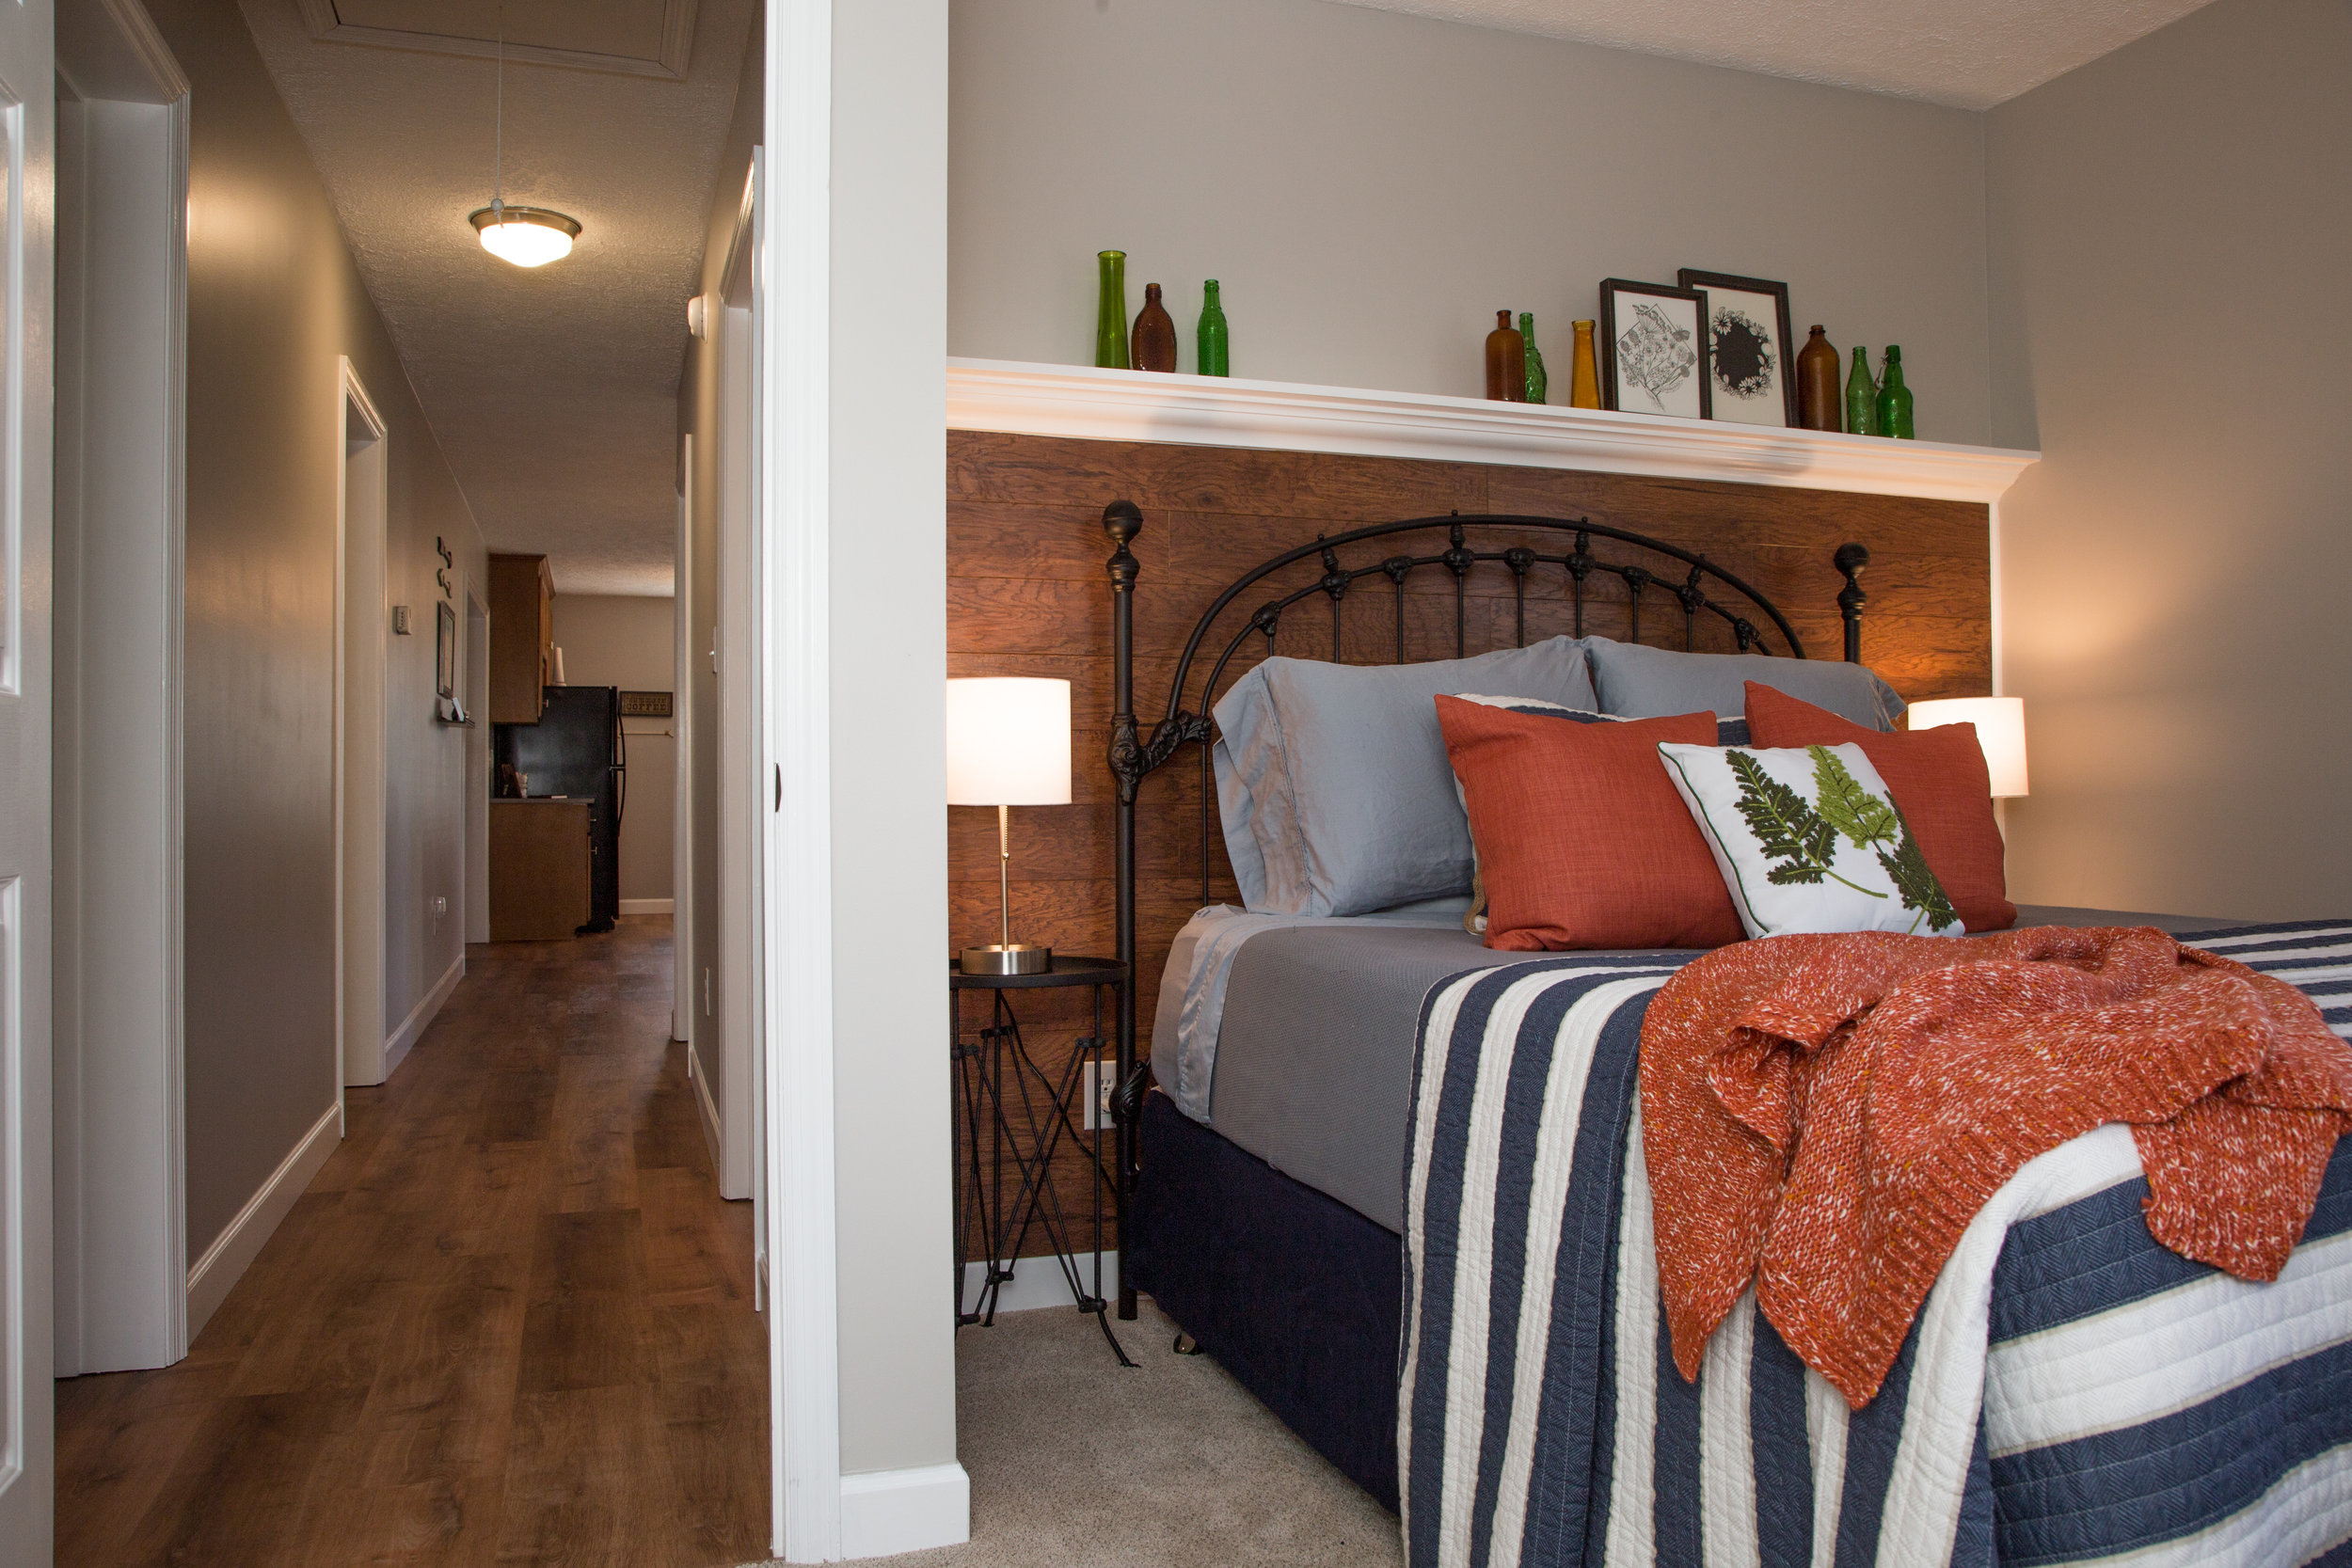 Cozy second bedroom with reclaimed-wood accent wall.